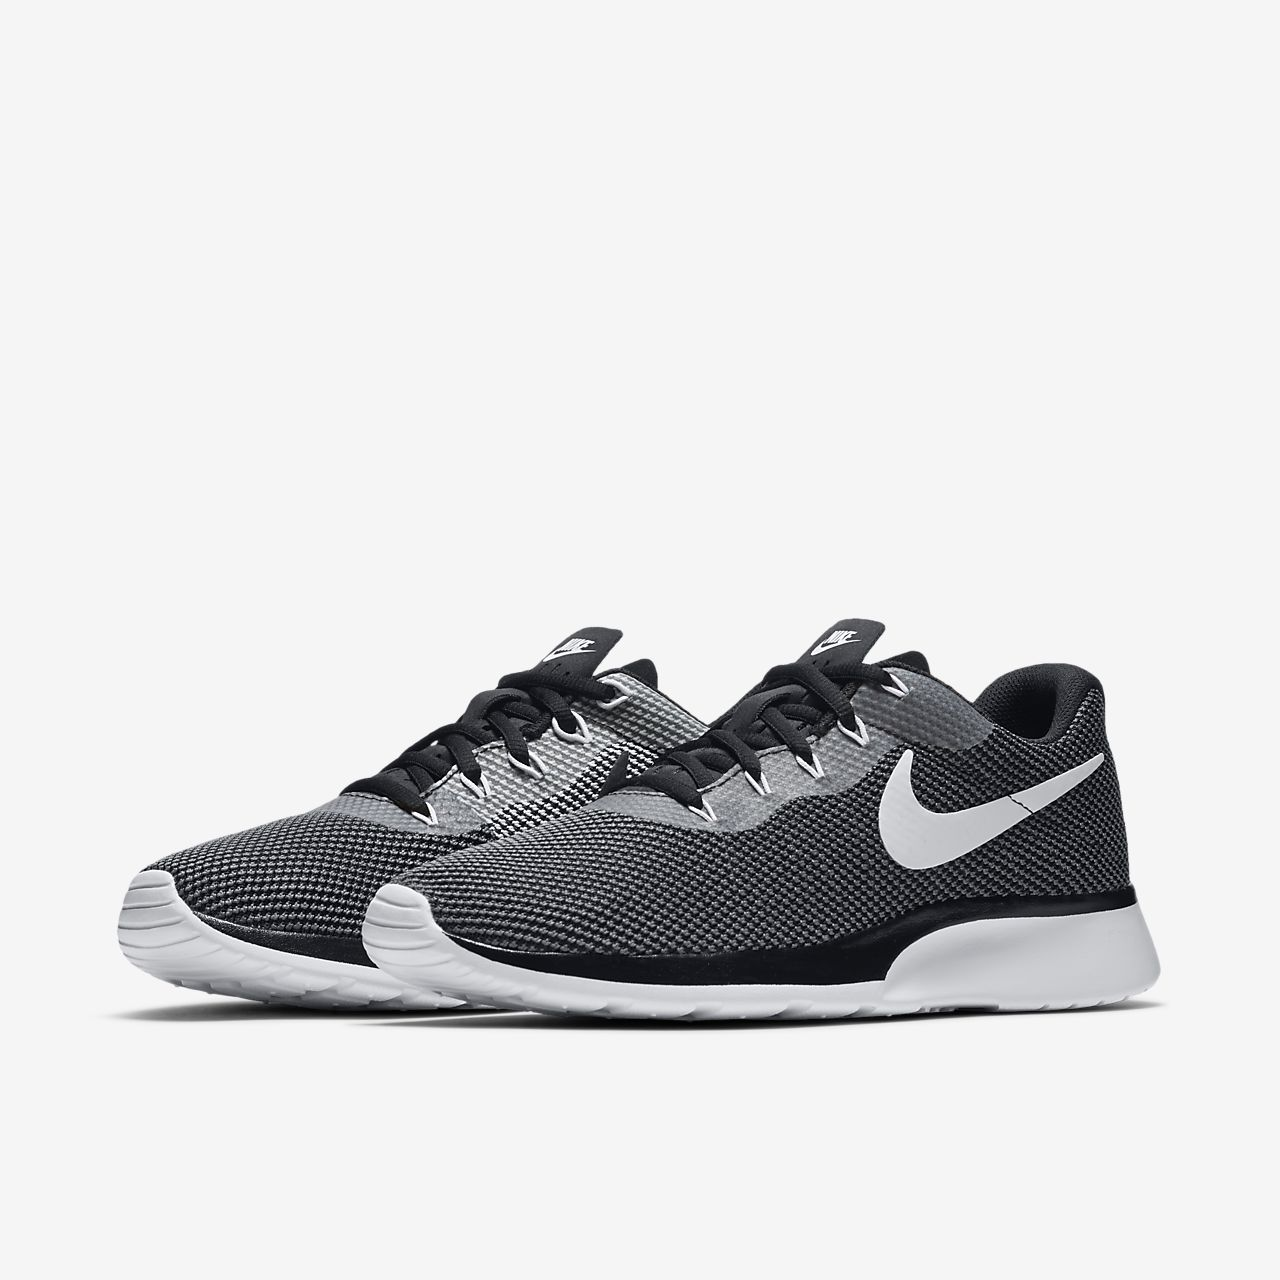 ... Nike Tanjun Racer Men's Shoe